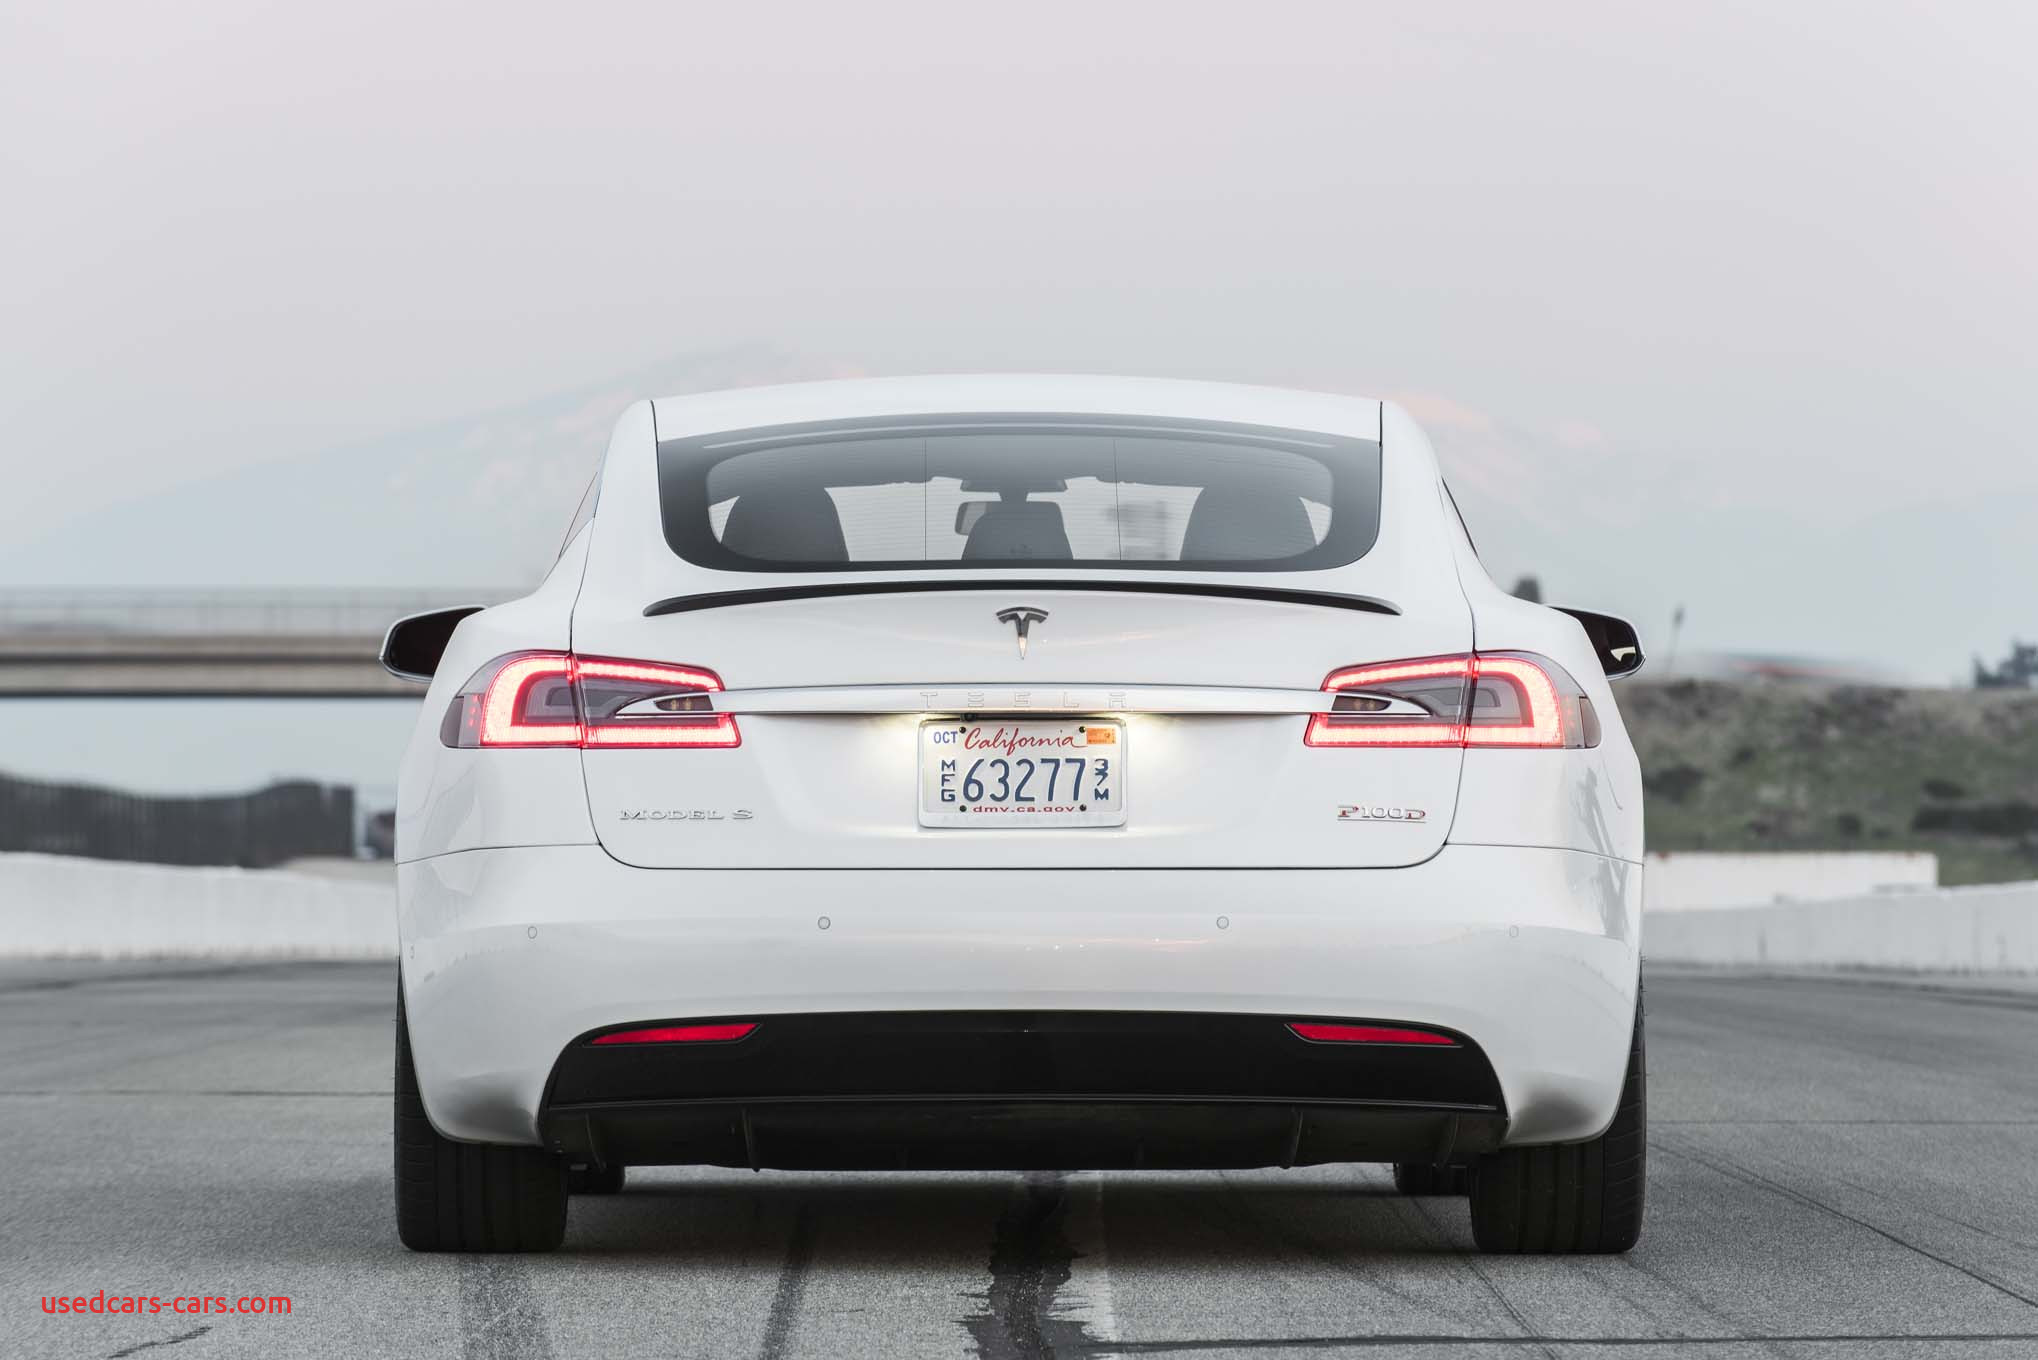 2017 Tesla Model S P100D rear end